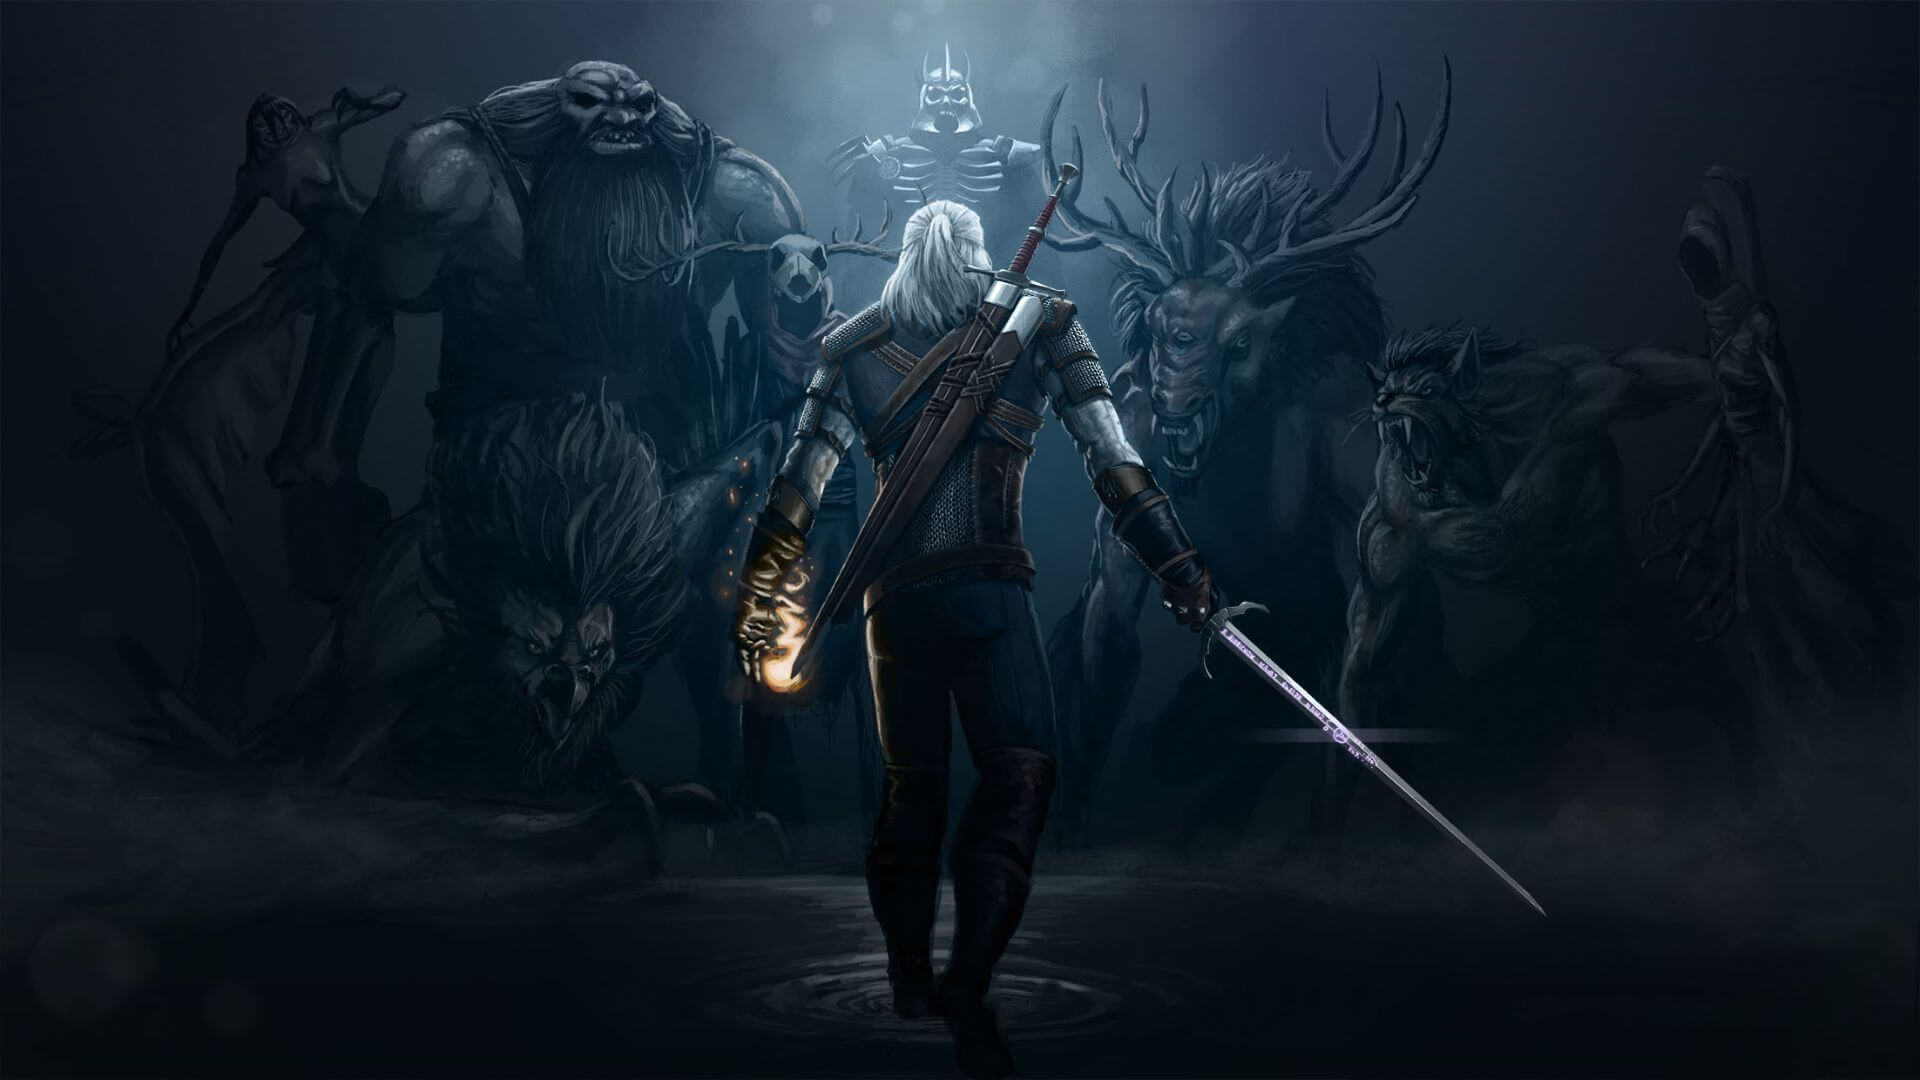 The Witcher To Get New Game After Cyberpunk 2077